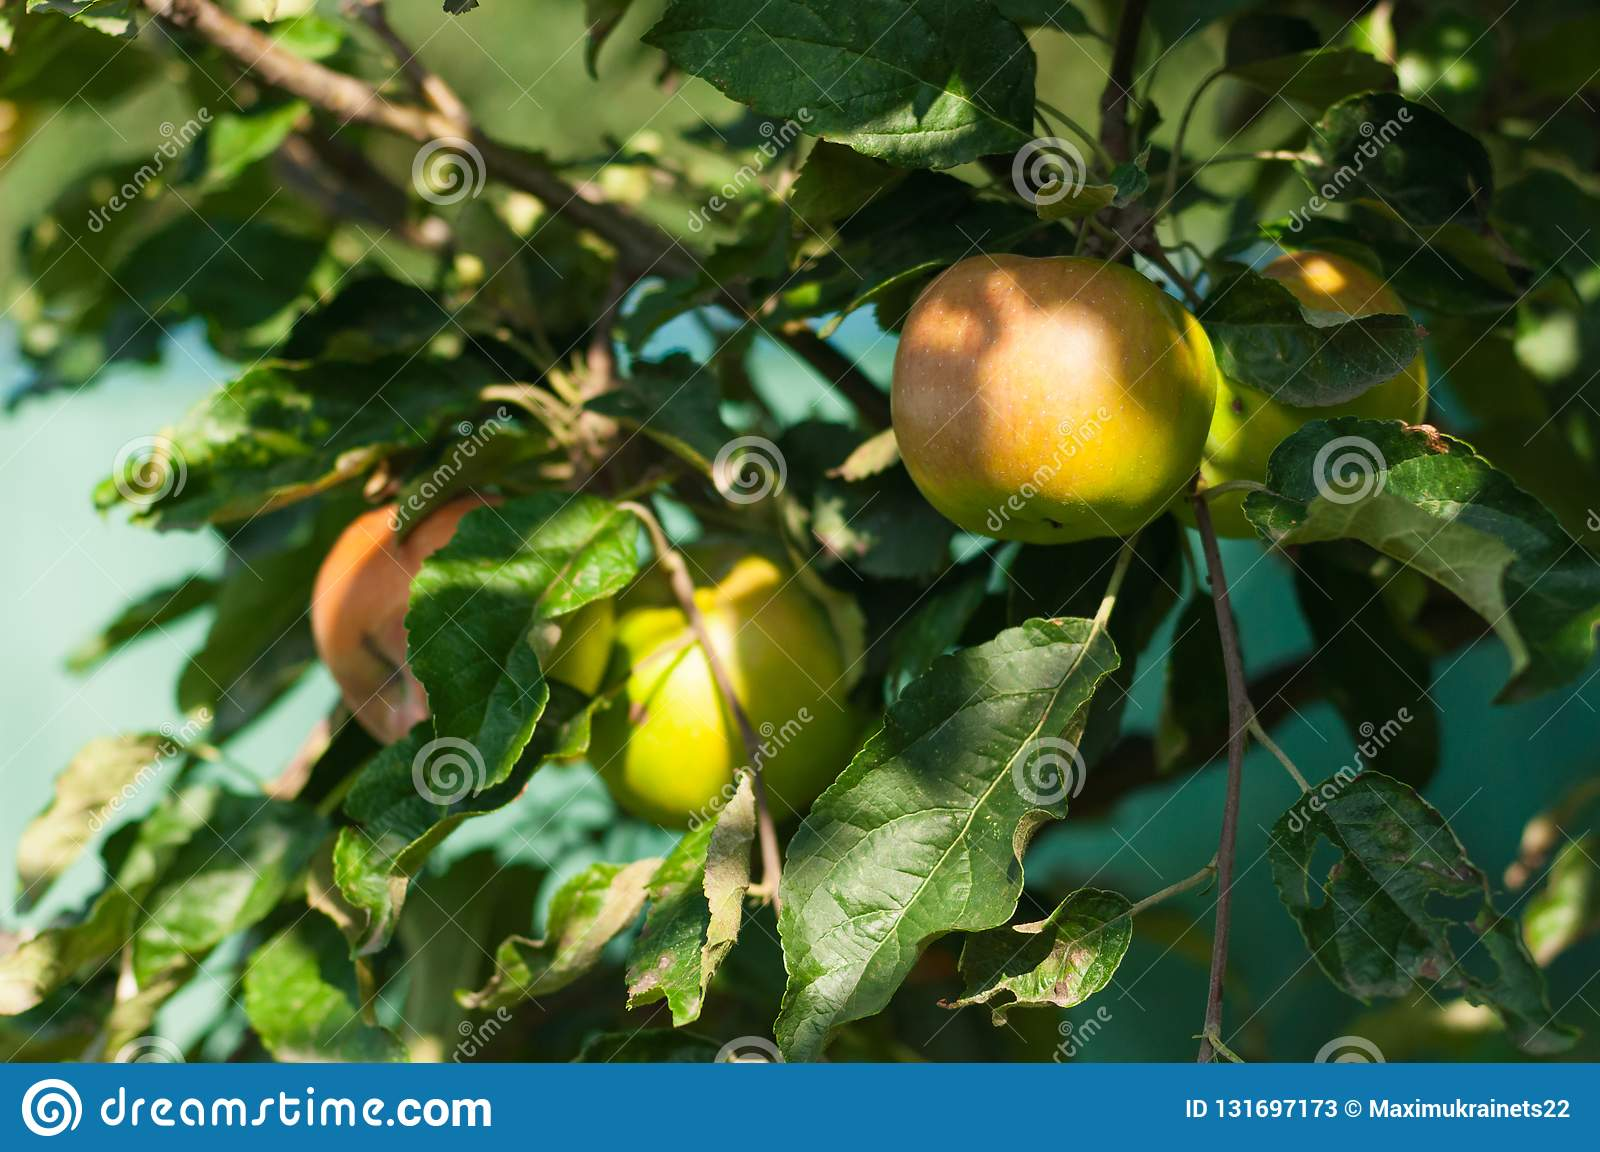 Three apples and leaves at a tree